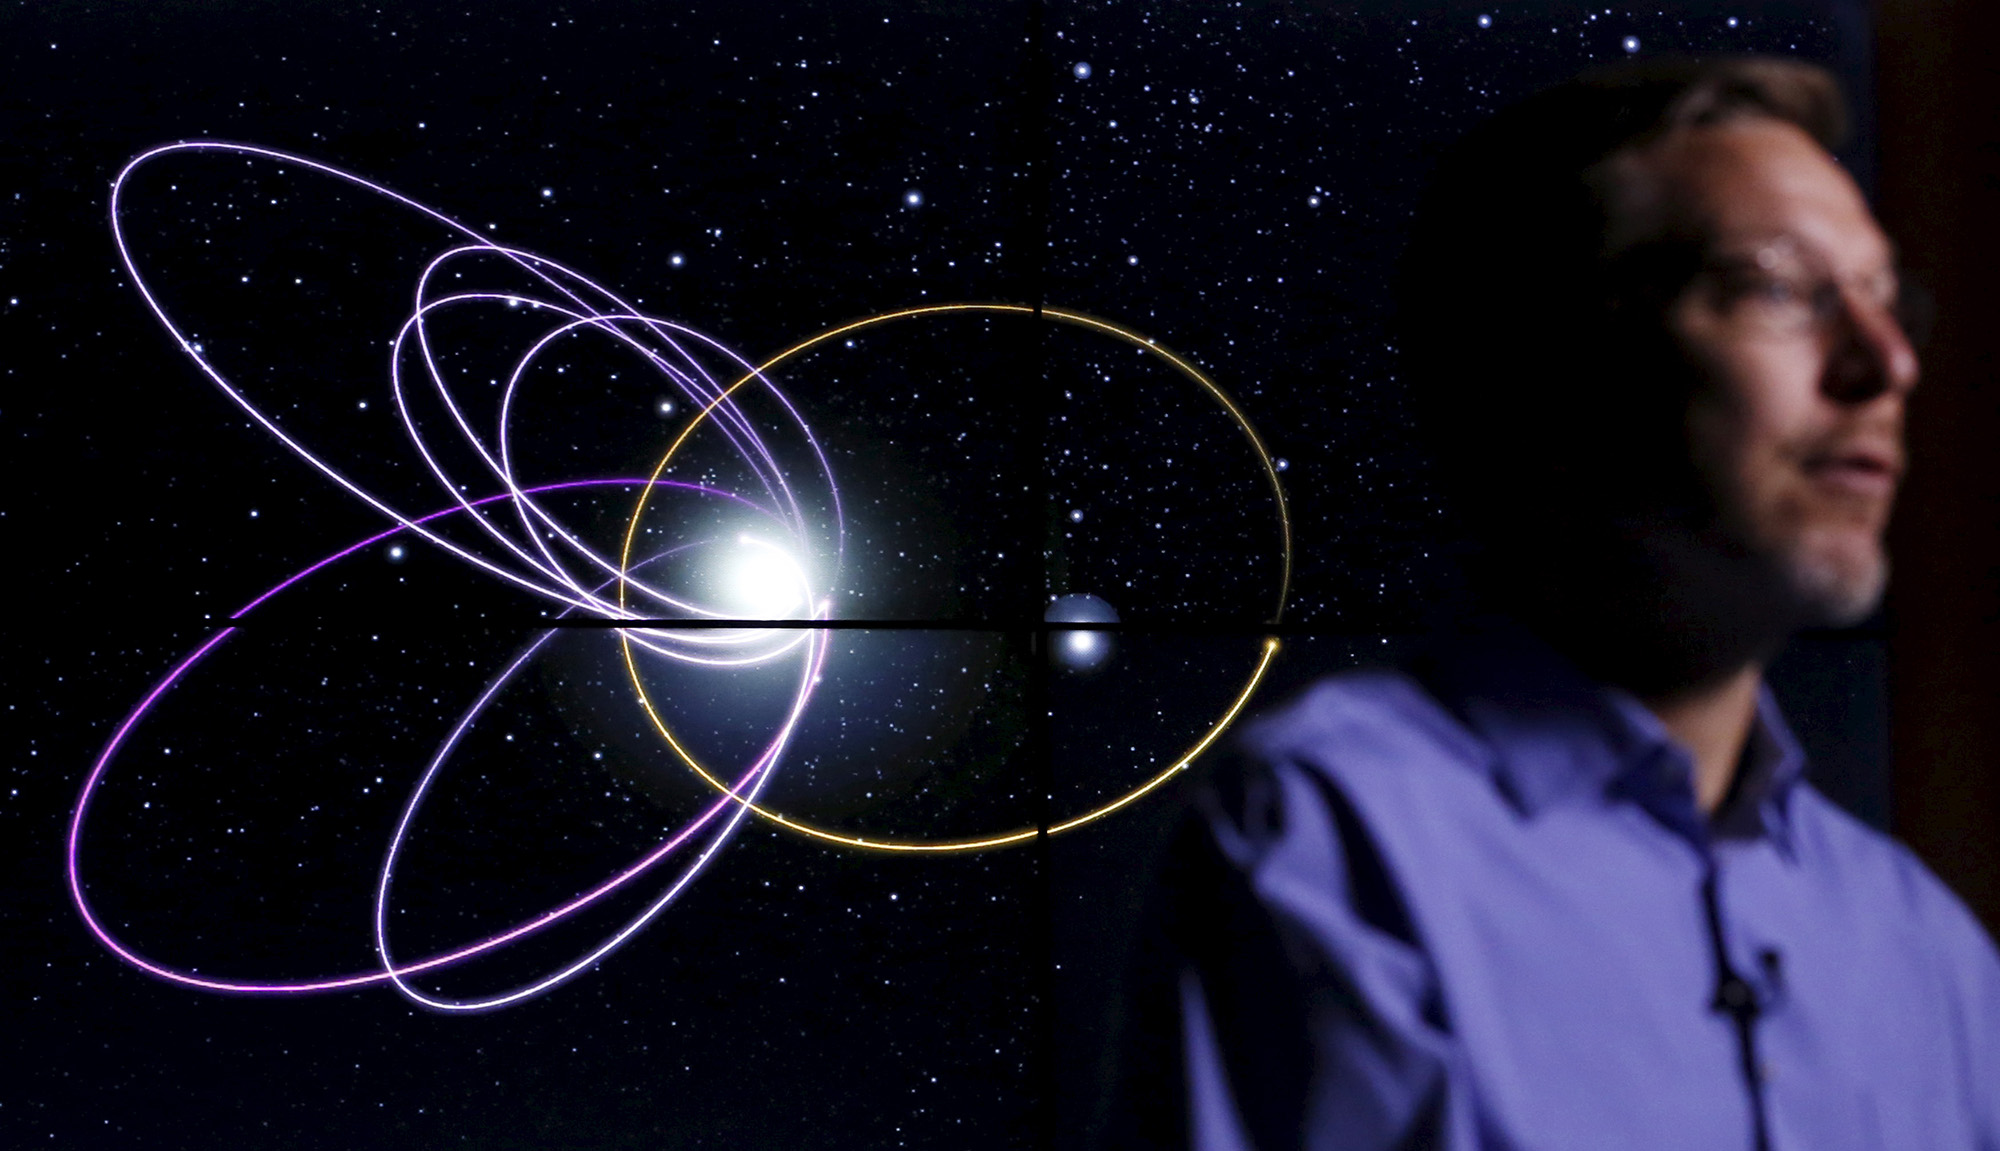 Professor of Planetary Astronomy Mike Brown speaks in front of a computer simulation of the probable orbit of Planet Nine (yellow) at the California Institute of Technology in Pasadena, California January 20, 2016. The solar system may host a ninth planet that is about 10 times bigger than Earth and orbiting far beyond Neptune, according to research published on Wednesday. REUTERS/Mario Anzuoni - RTX23ABT